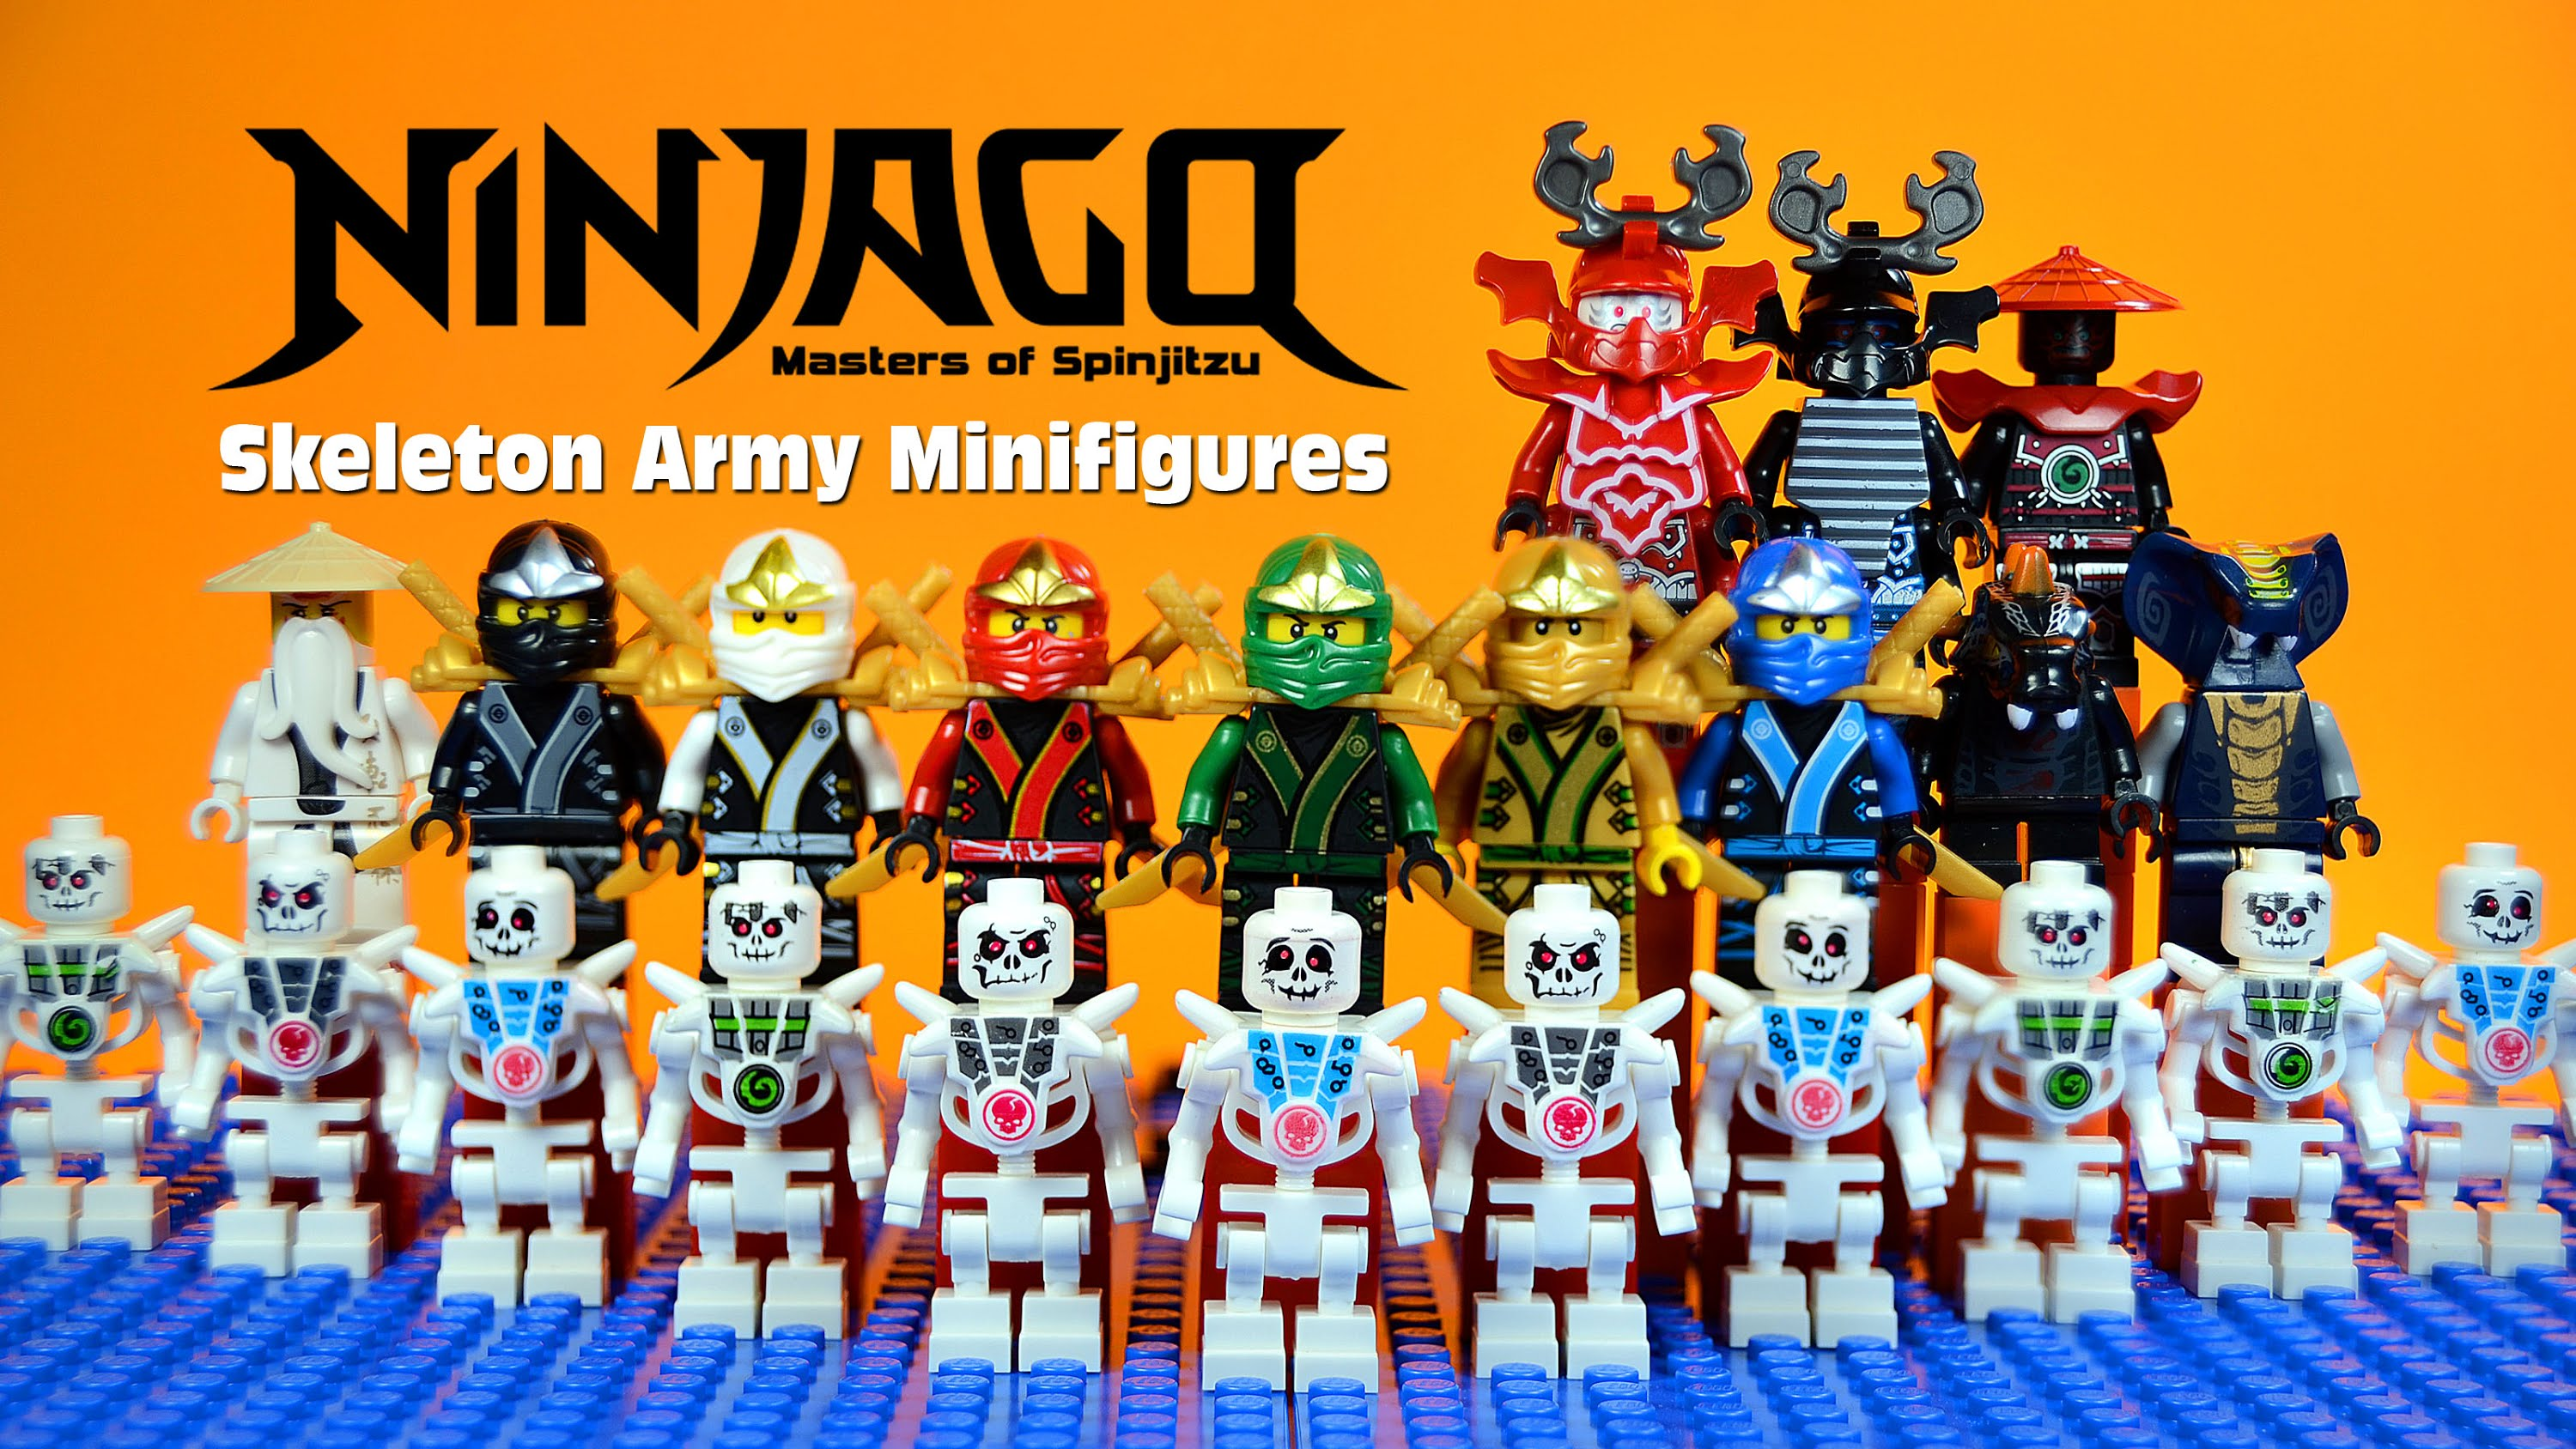 Lego Ninjago Masters Of Spinjitzu Wallpapers Movie Hq Lego Images, Photos, Reviews